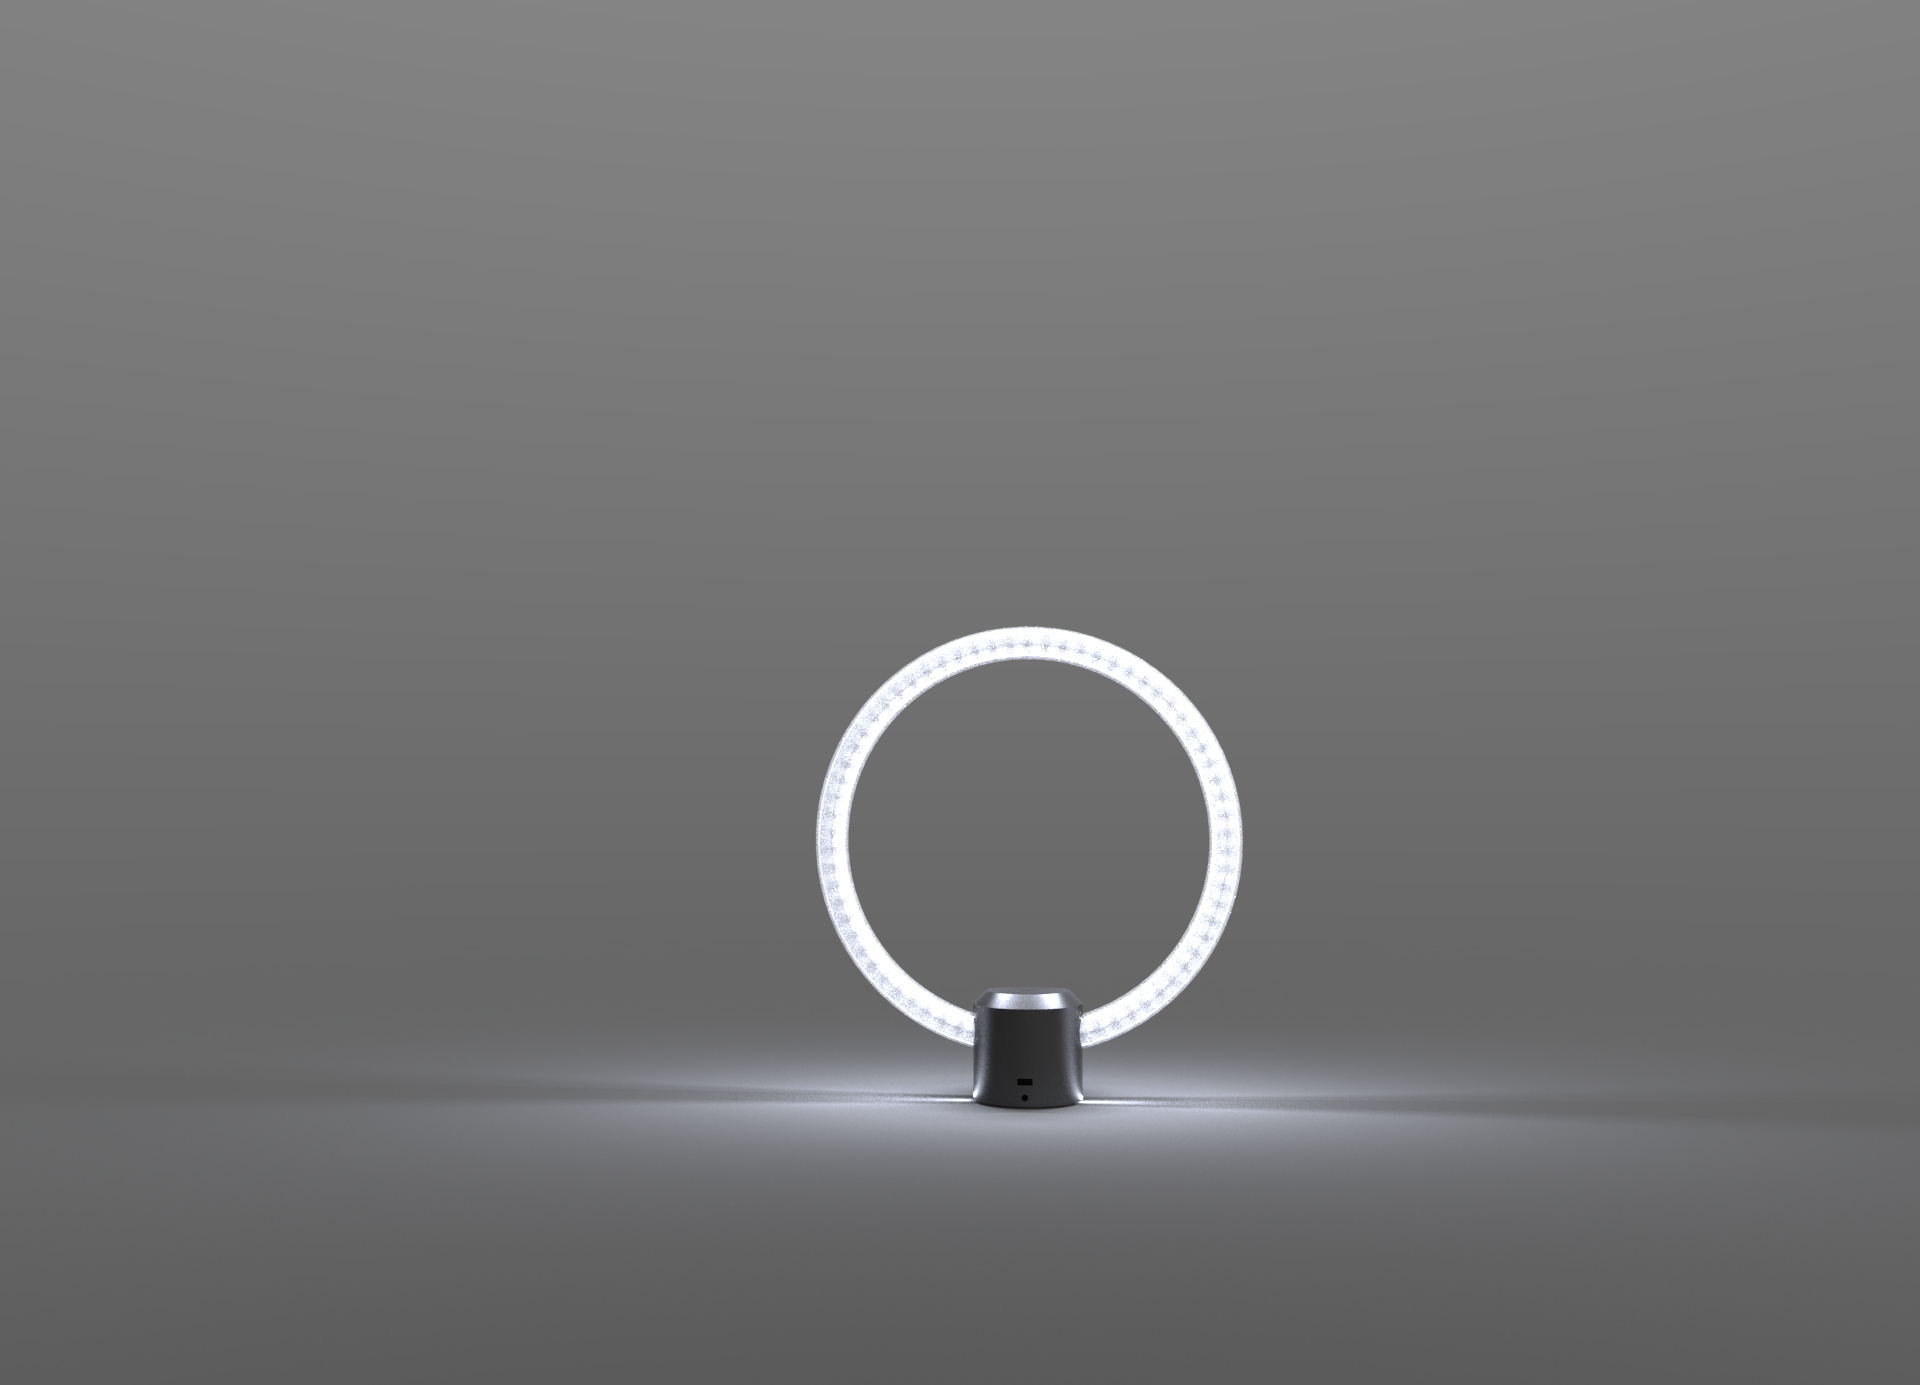 Ge made a circular lamp with alexa in it the verge ge led lamp with alexa parisarafo Choice Image